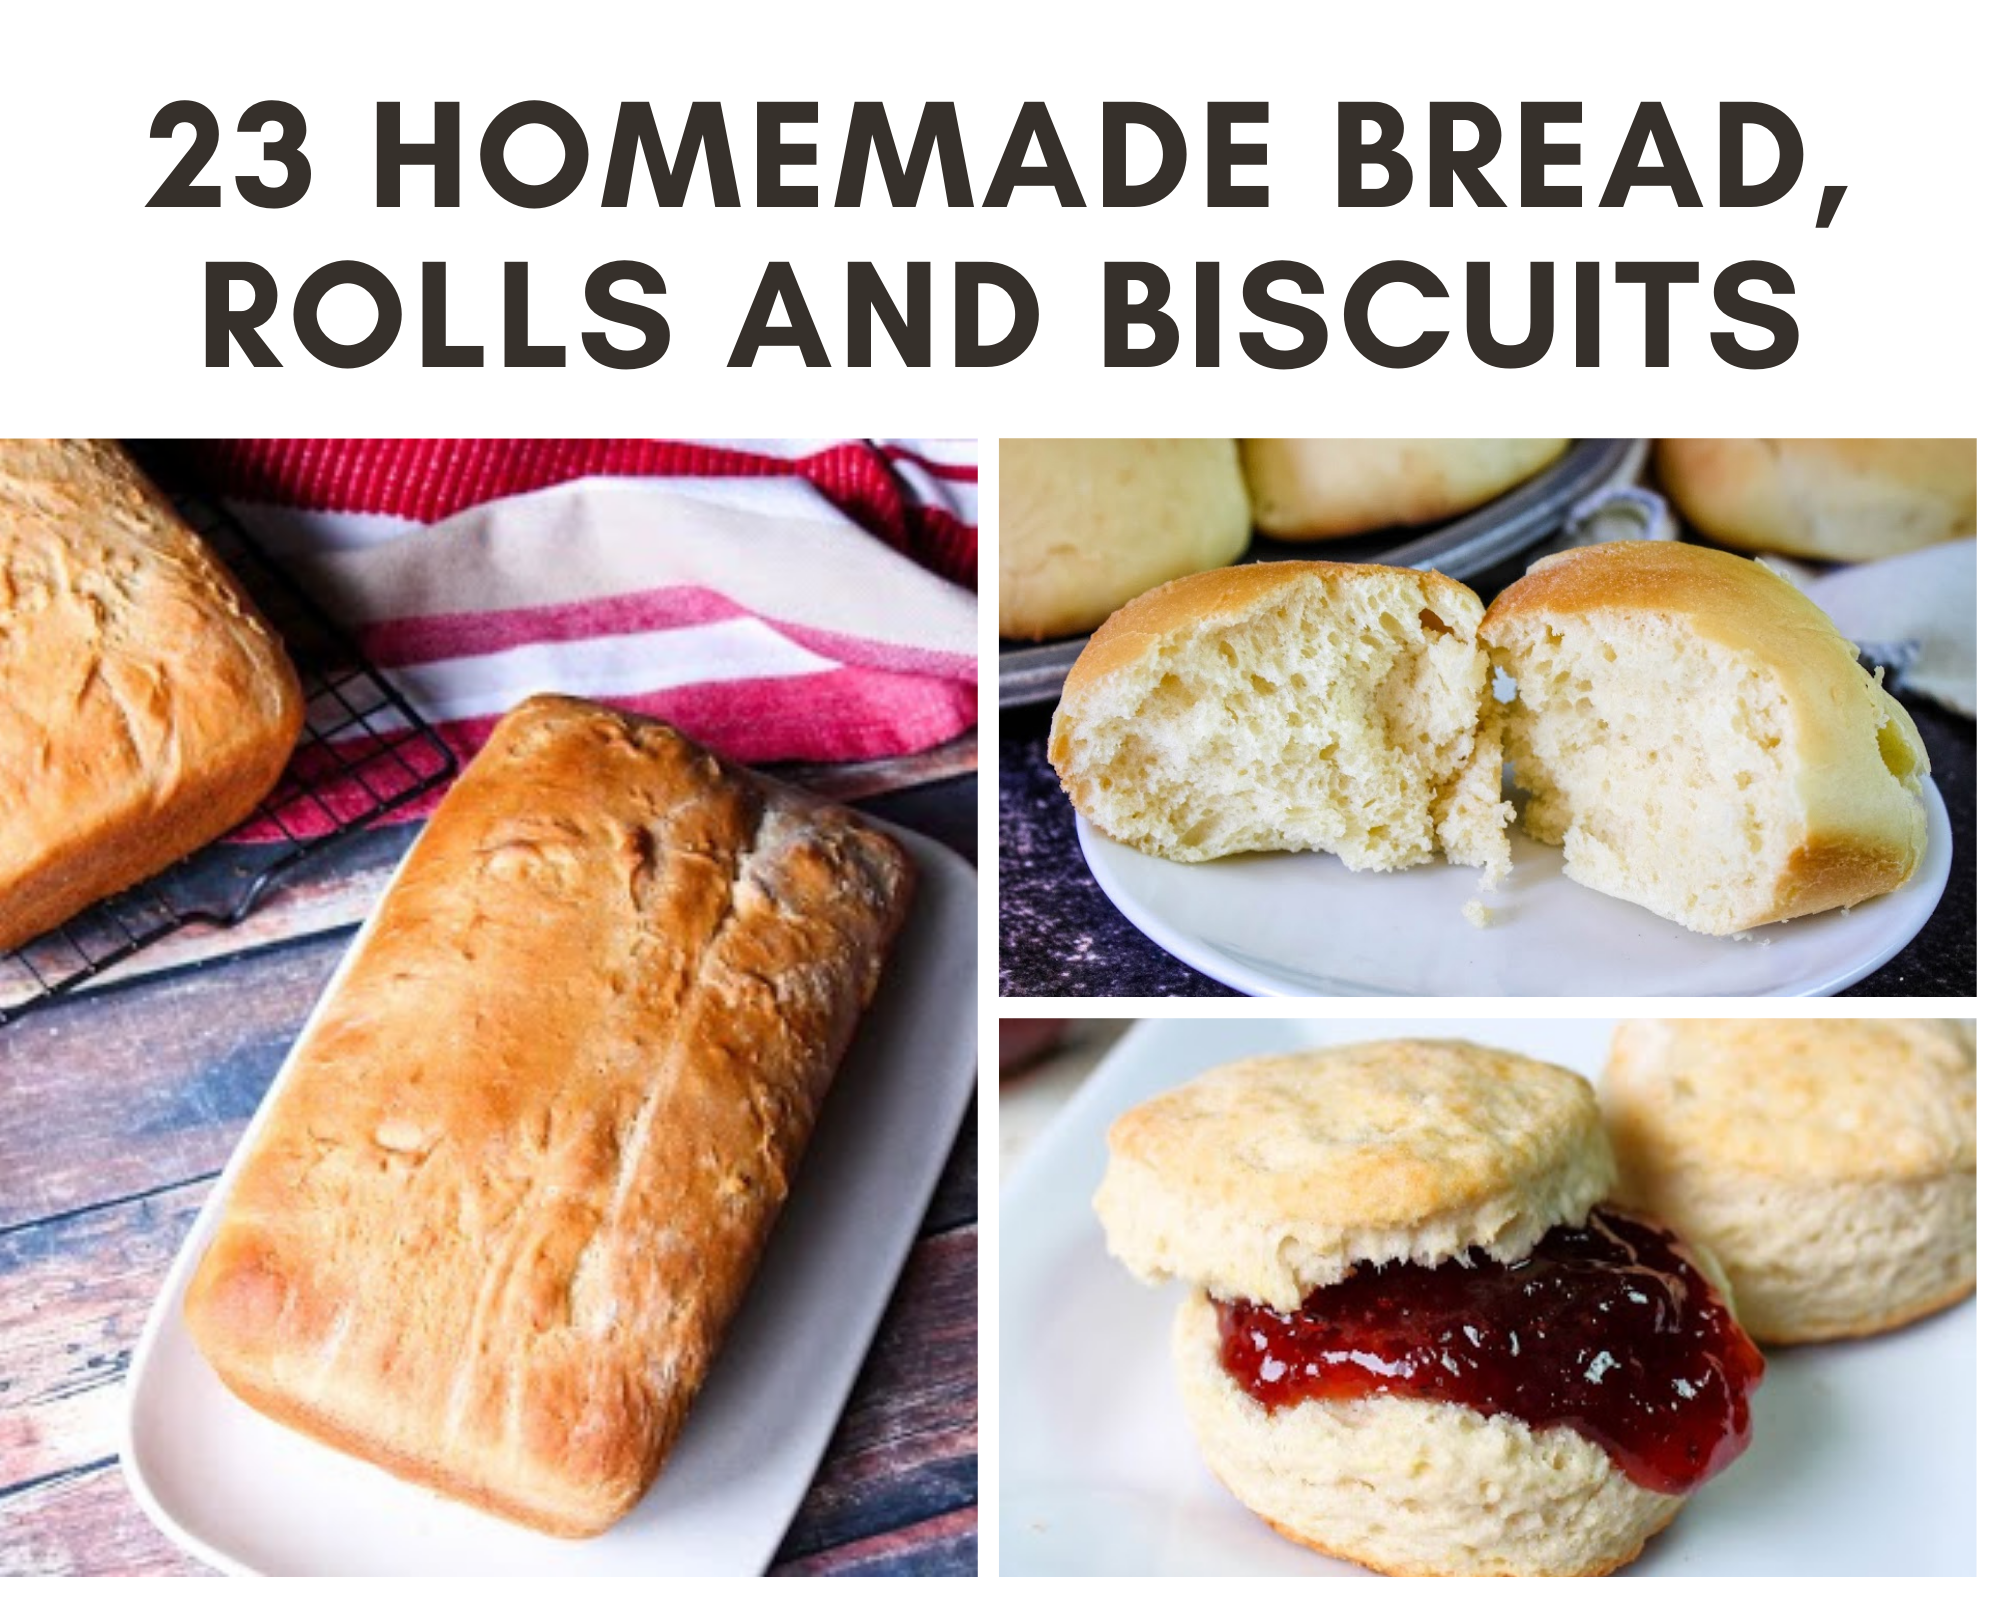 Homemade bread, biscuits and rolls